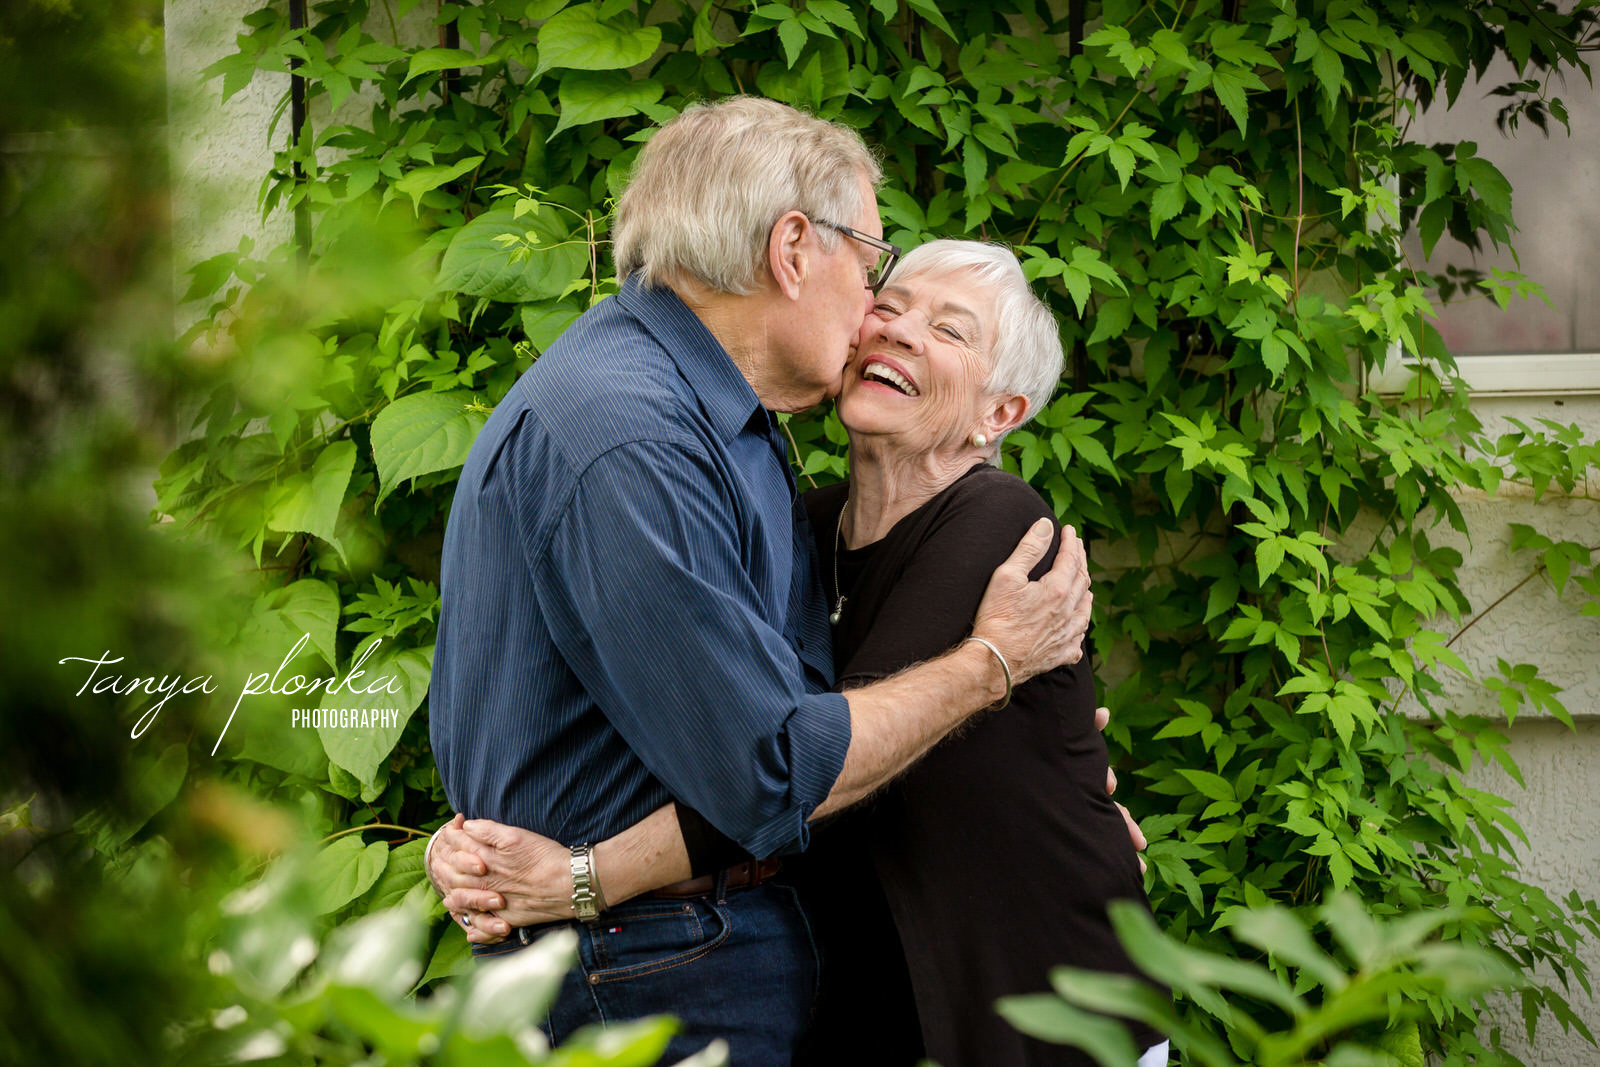 married senior couple with husband kissing wife on cheek while she smiles